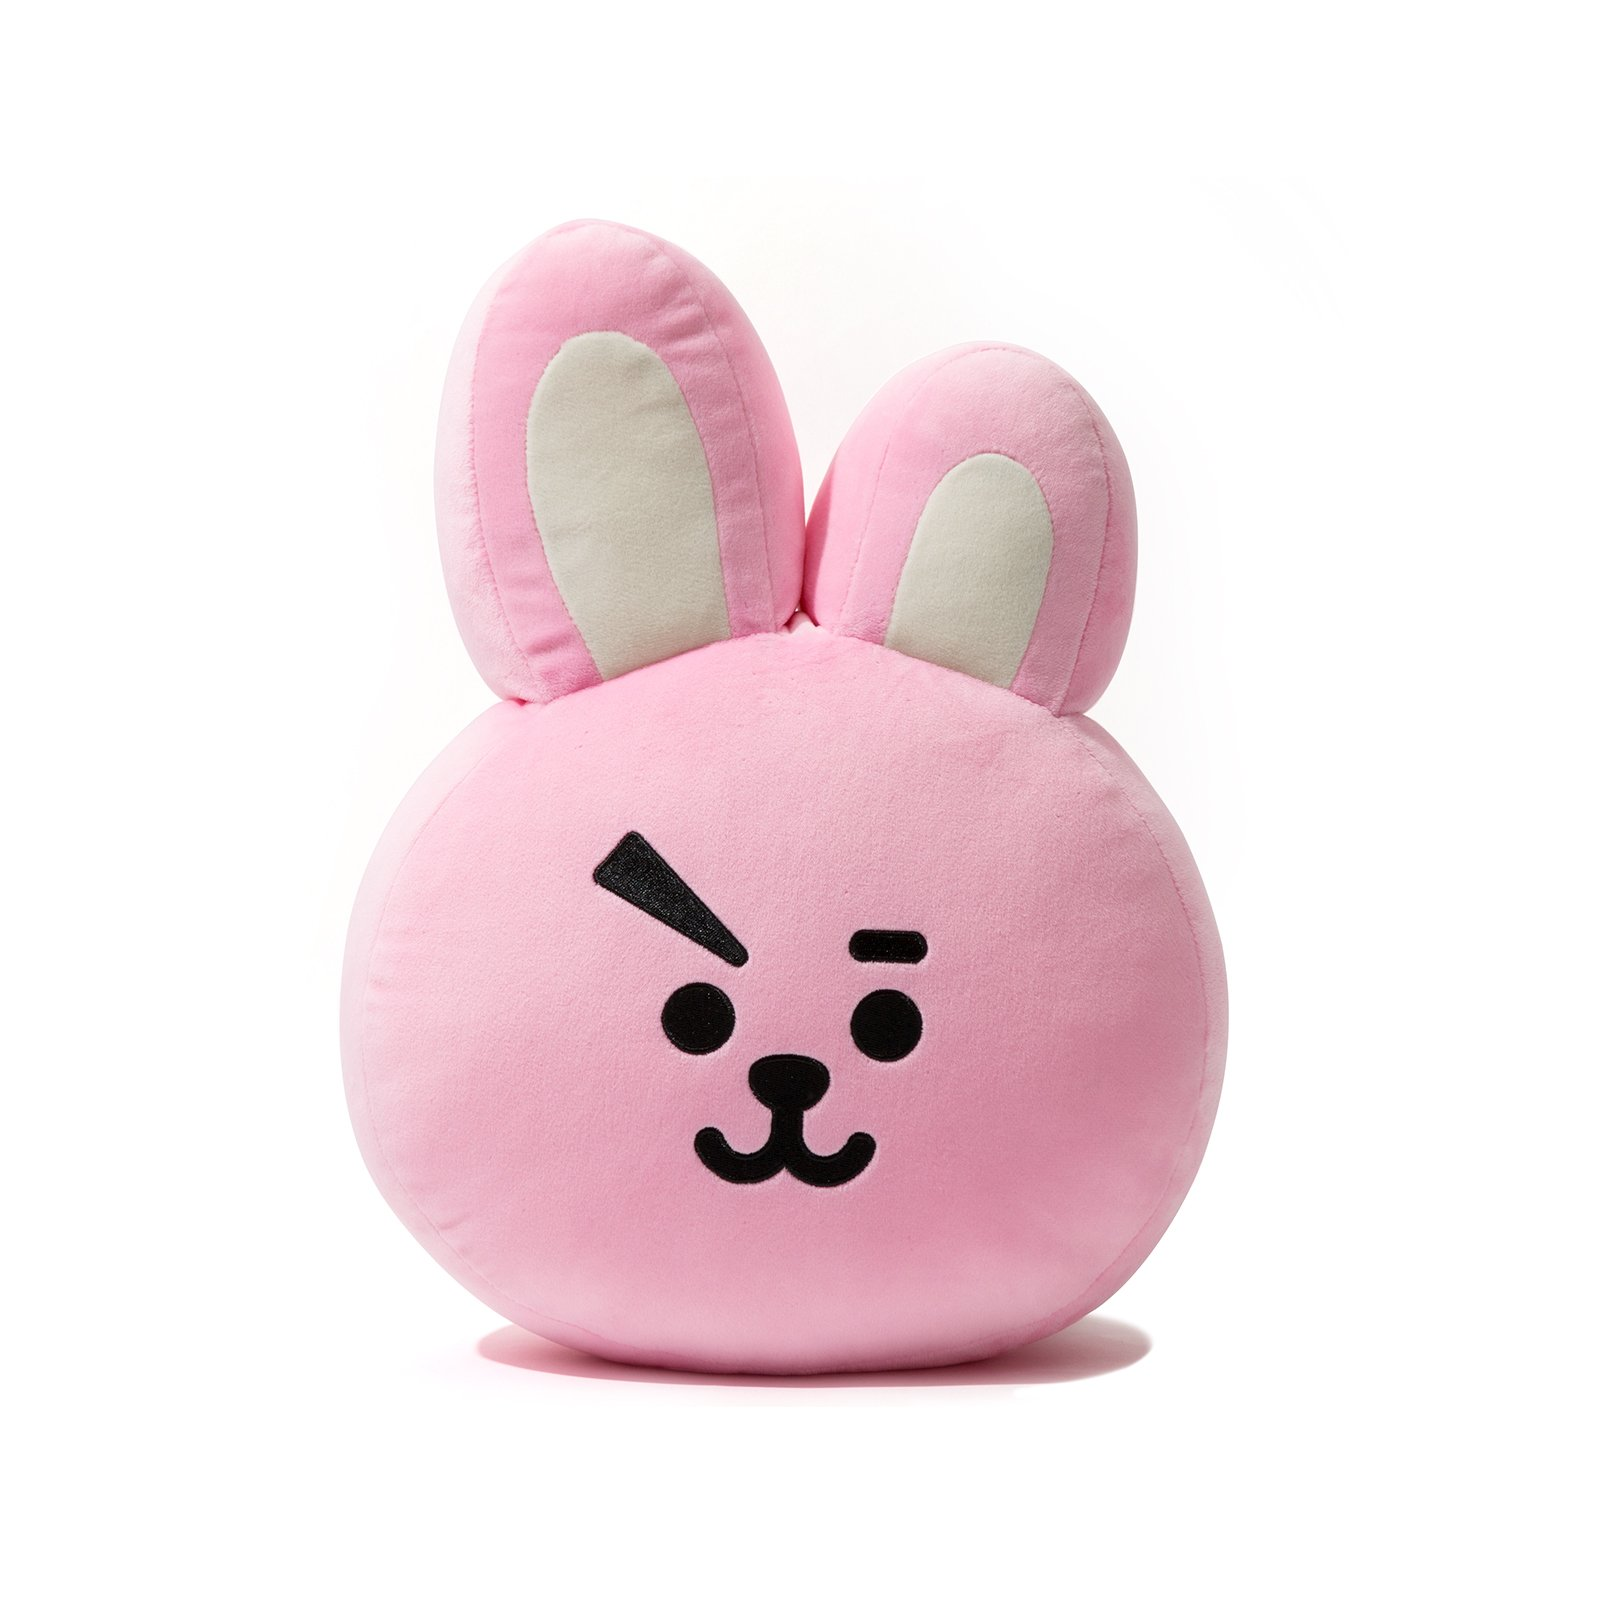 BT21 Cooky Cushion 11.8 inches Pink